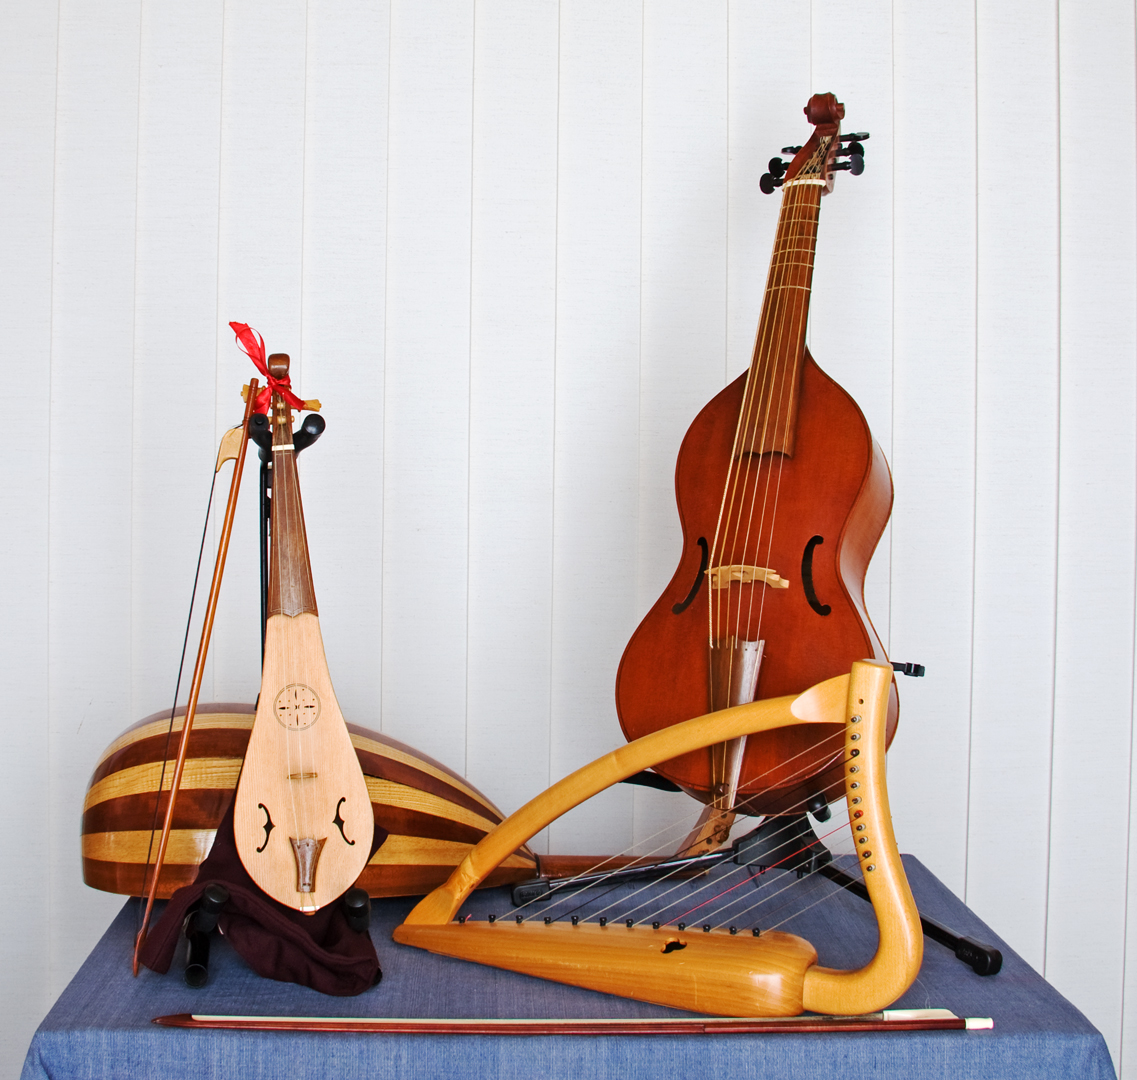 replica Tudor string instruments